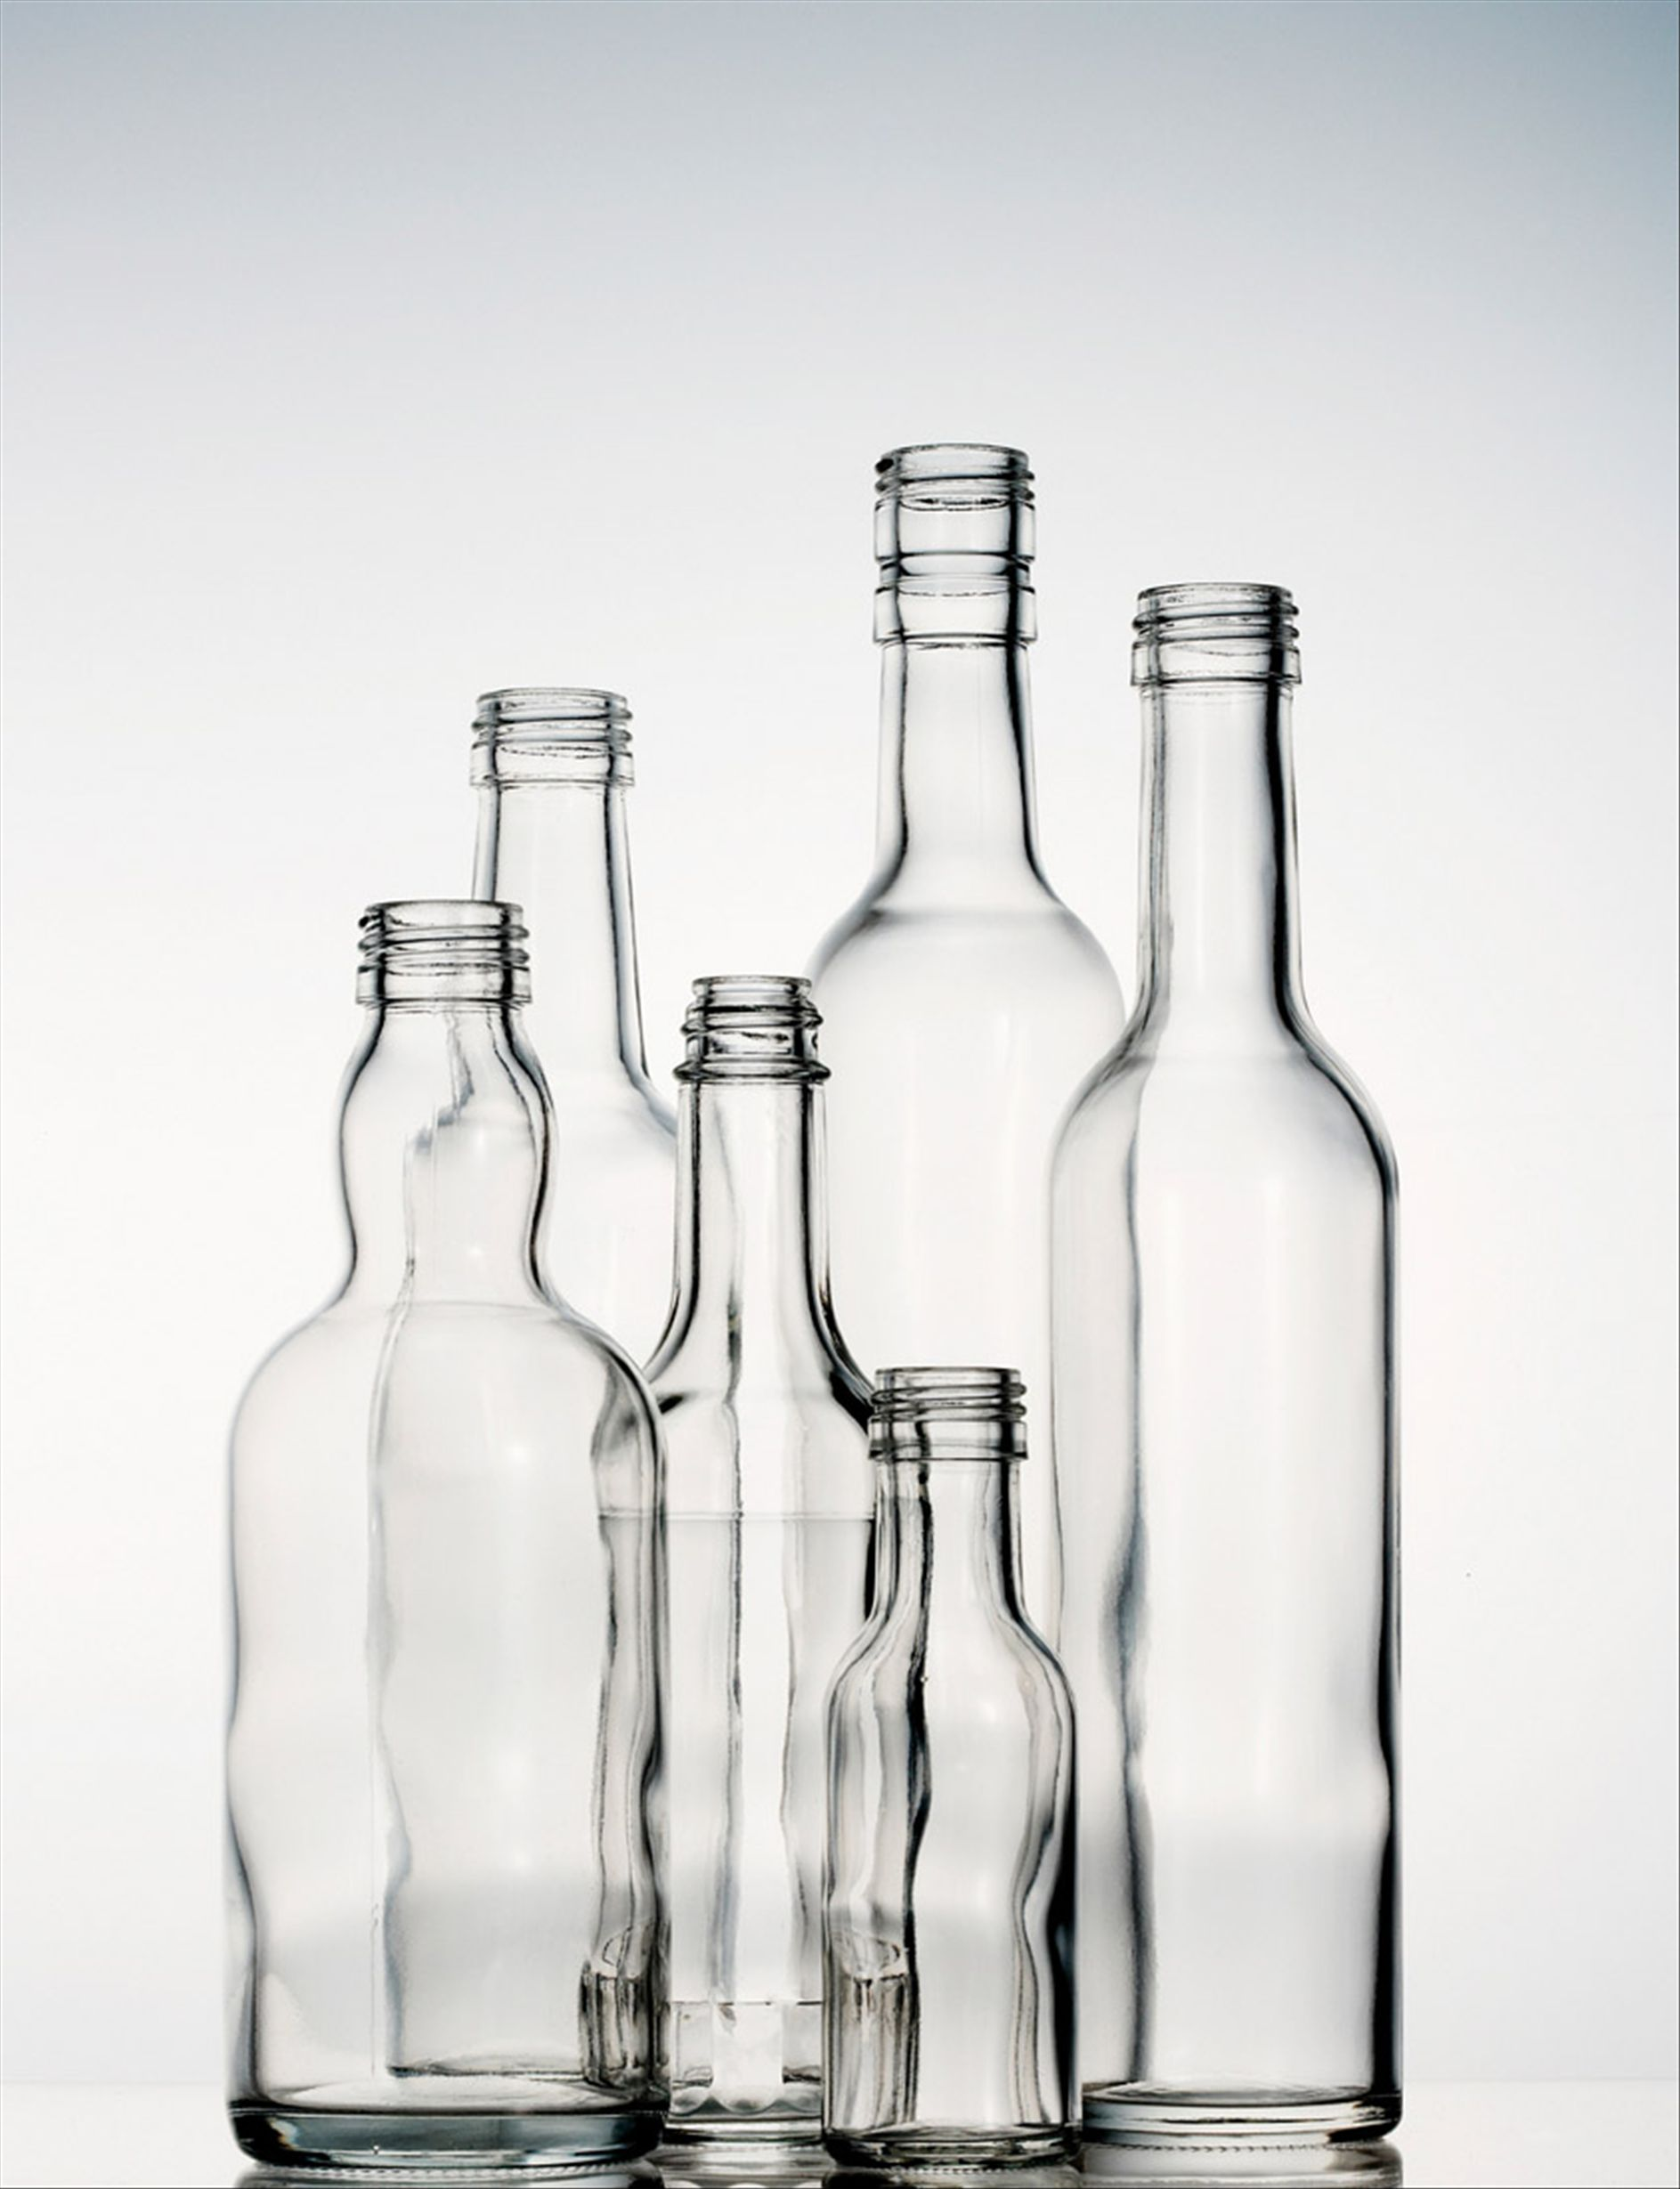 How to improve glass annealing for glass bottle manufacturers